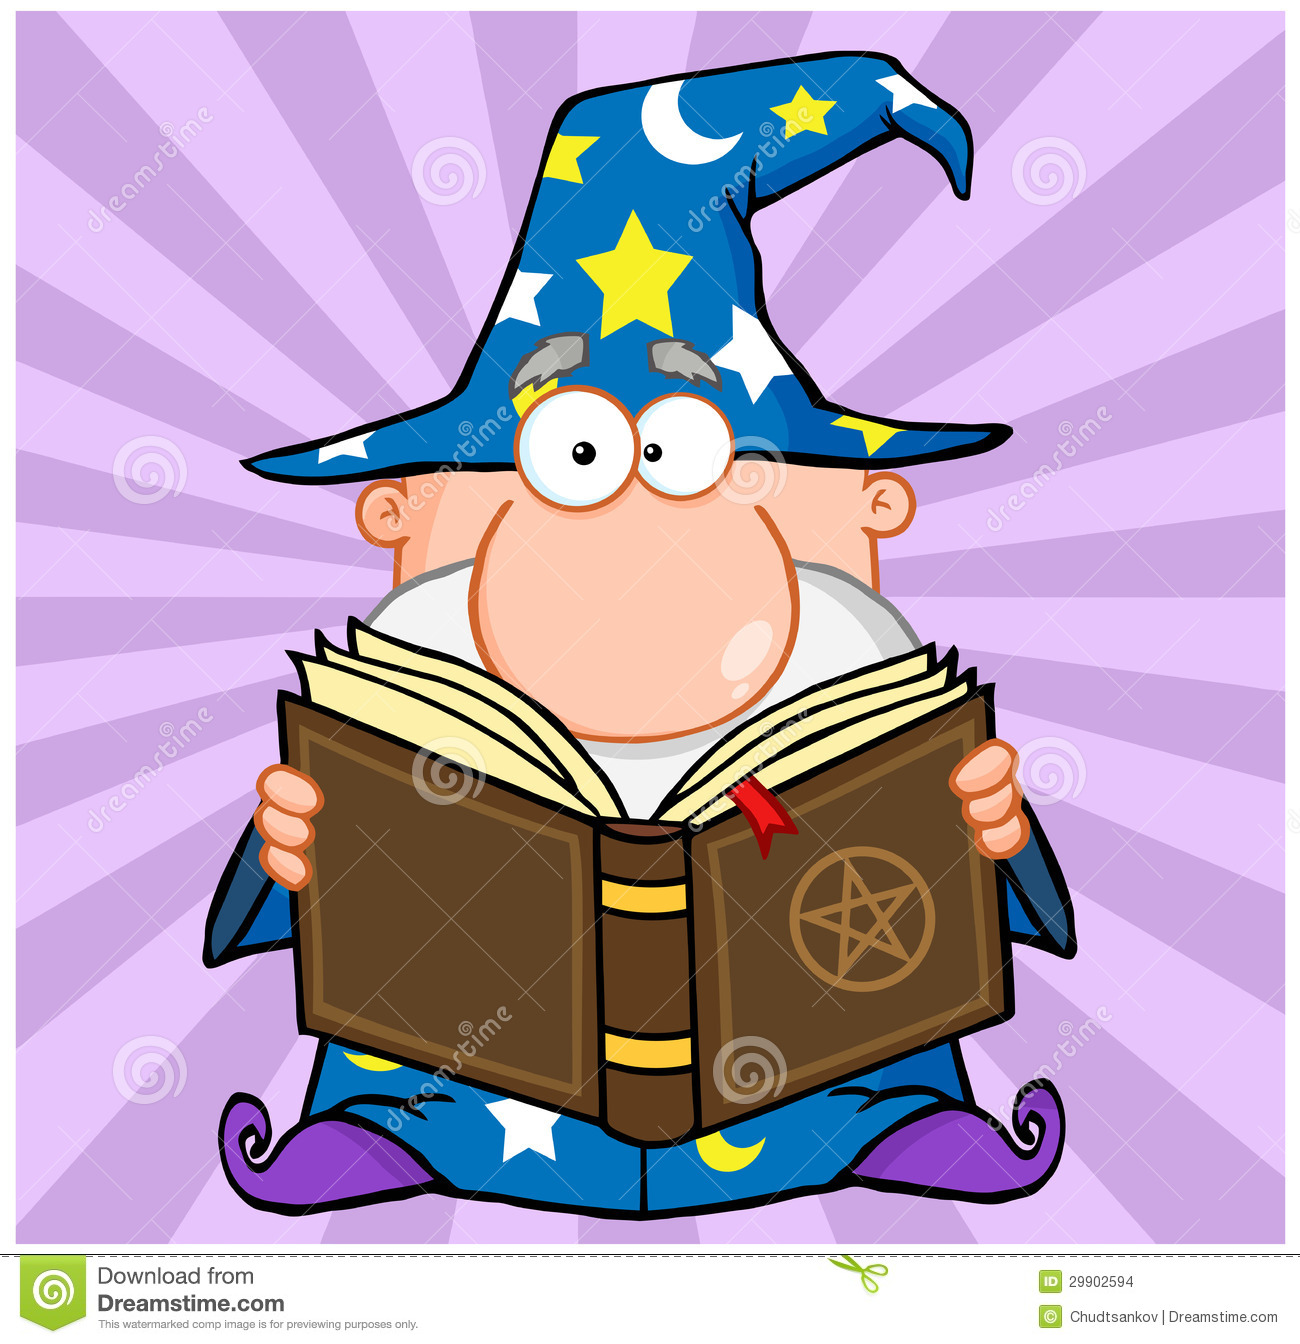 Missing sleepy hollow a disney classic fills the void besides Hawaiian Coloring Pages together with Stock Images Funny Wizard Holding Magic Book Cartoon Character Image29902594 together with Kawaii And Kowai additionally Wizard Holding A Stick With Arms Wide Open. on old cartoon supernatural